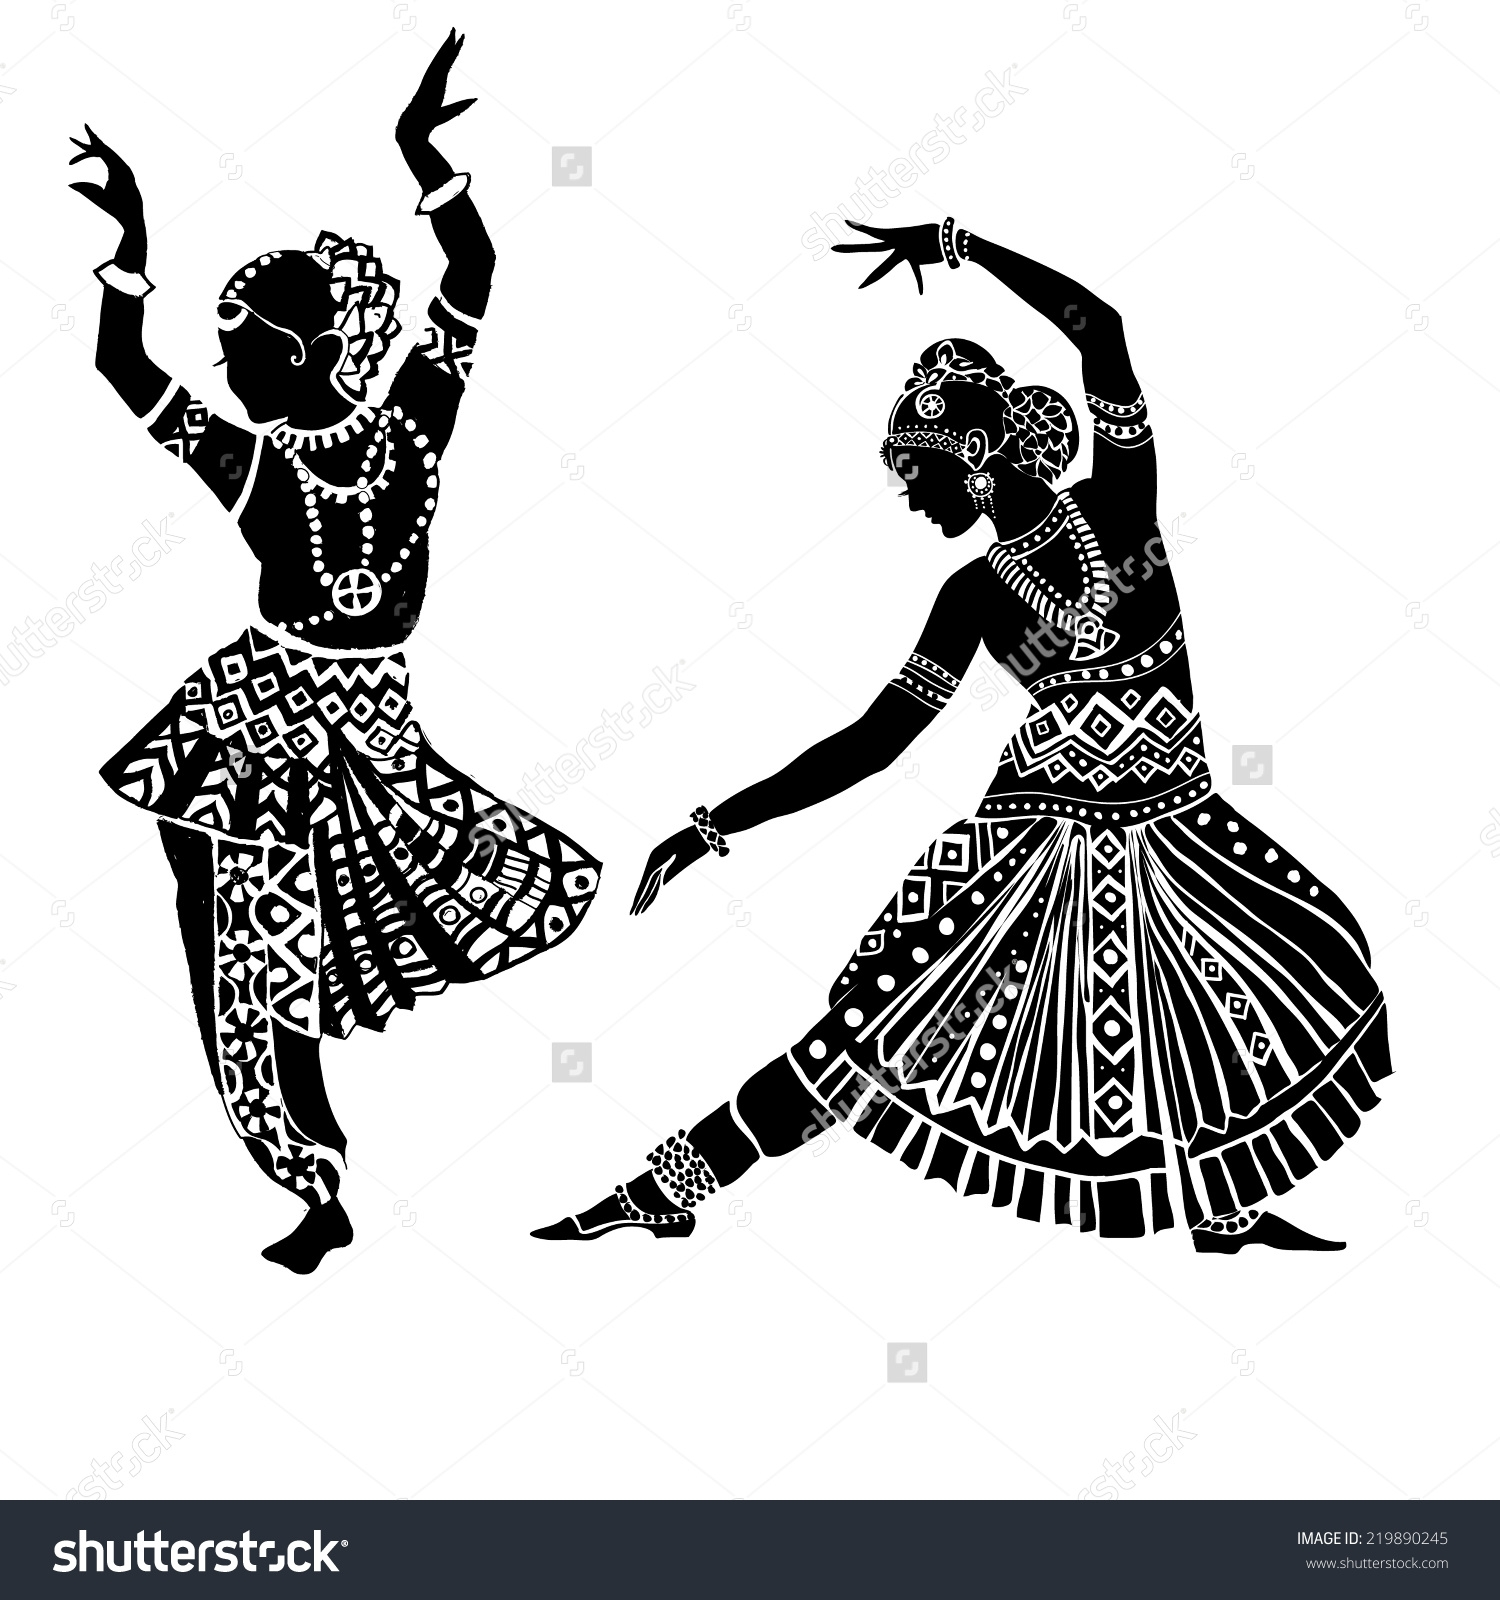 Classical dance clipart black and white 5 » Clipart Station.